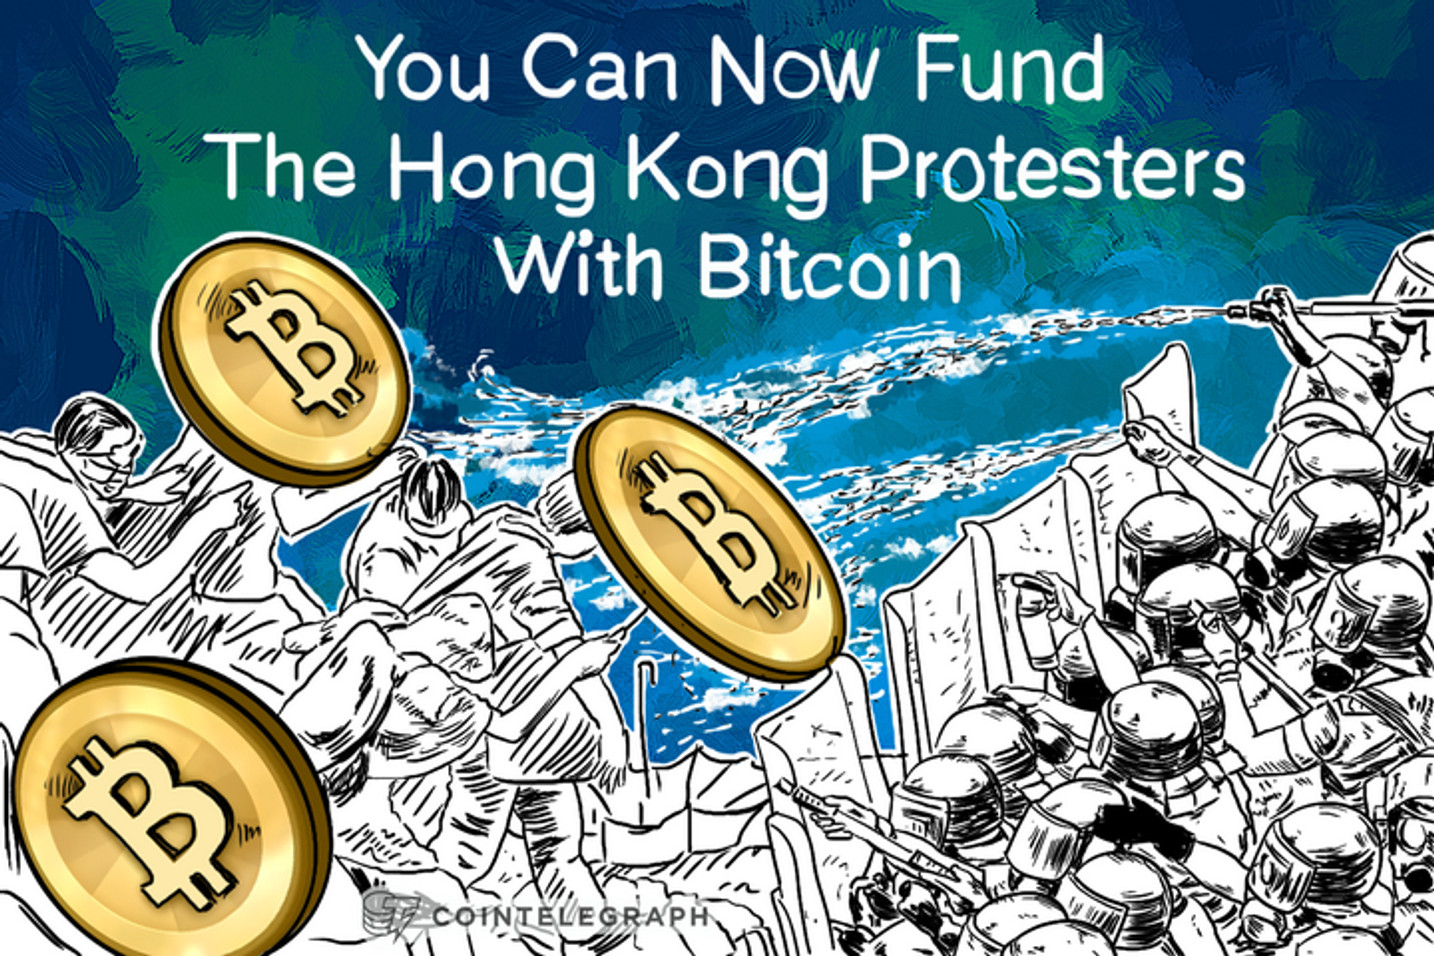 You Can Now Fund The Hong Kong Protesters With Bitcoin